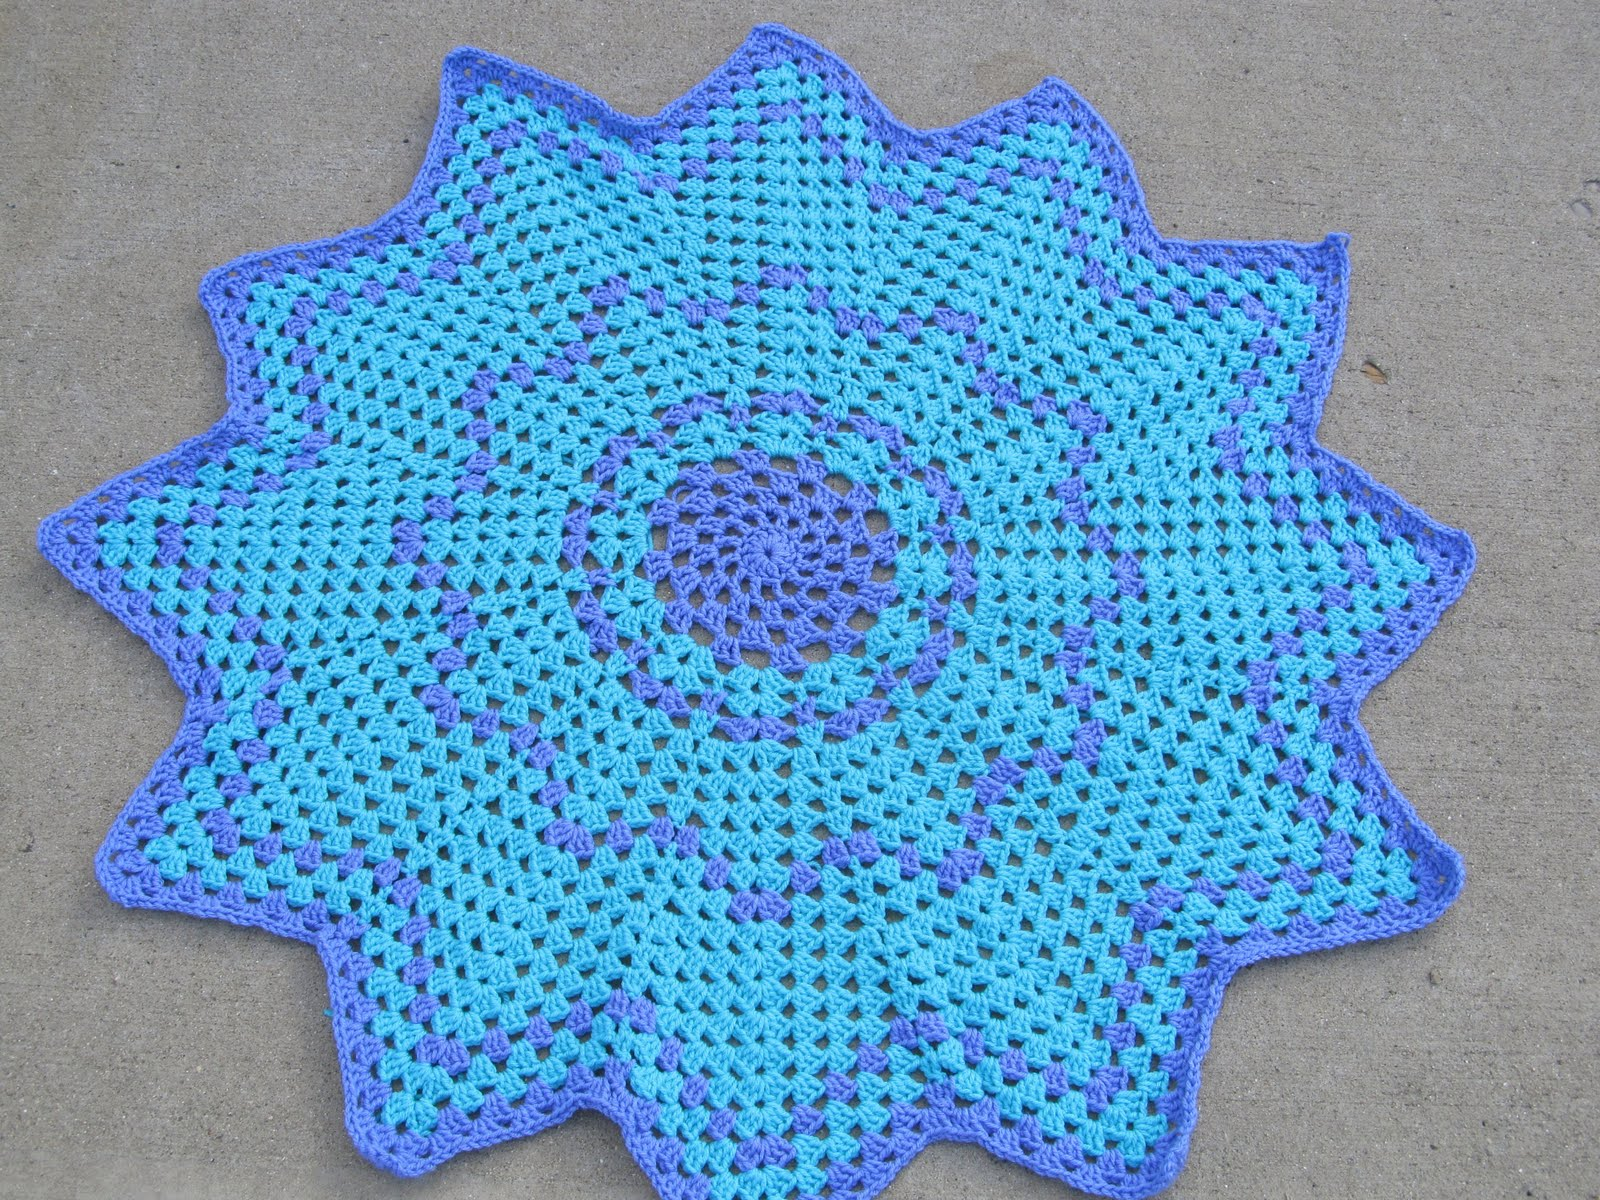 Crochet Stitches Granny Ripple : SmoothFox Crochet and Knit: SmoothFoxs Granny Round Ripple 12 and 8 ...